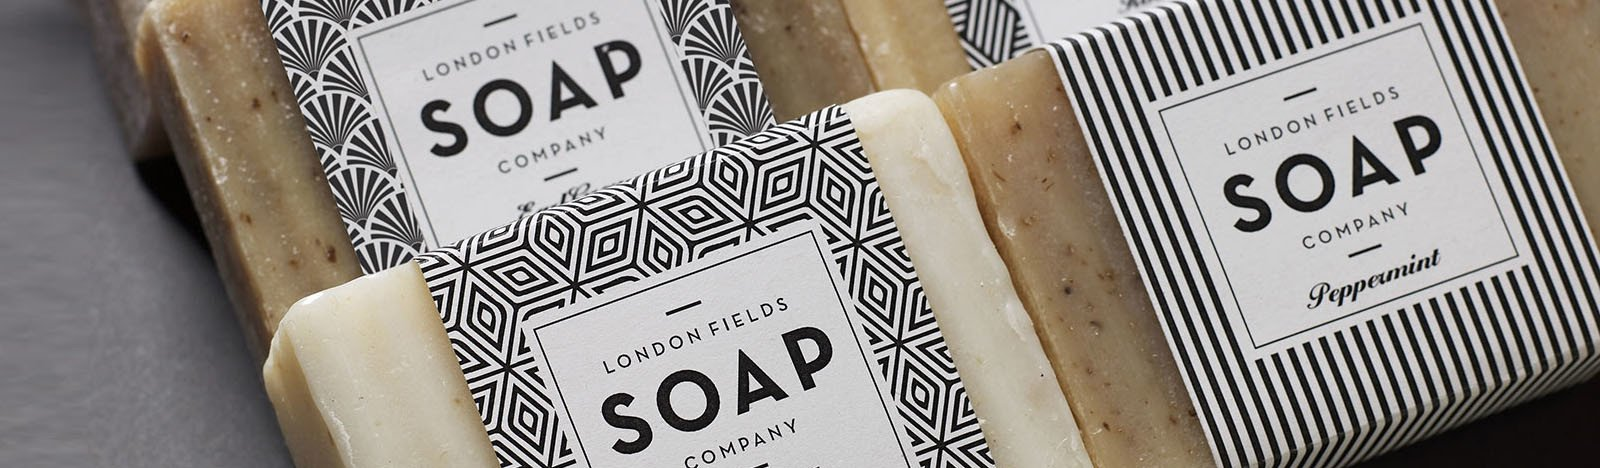 Custom Soap Labels For Cosmetics Toiletry Health And